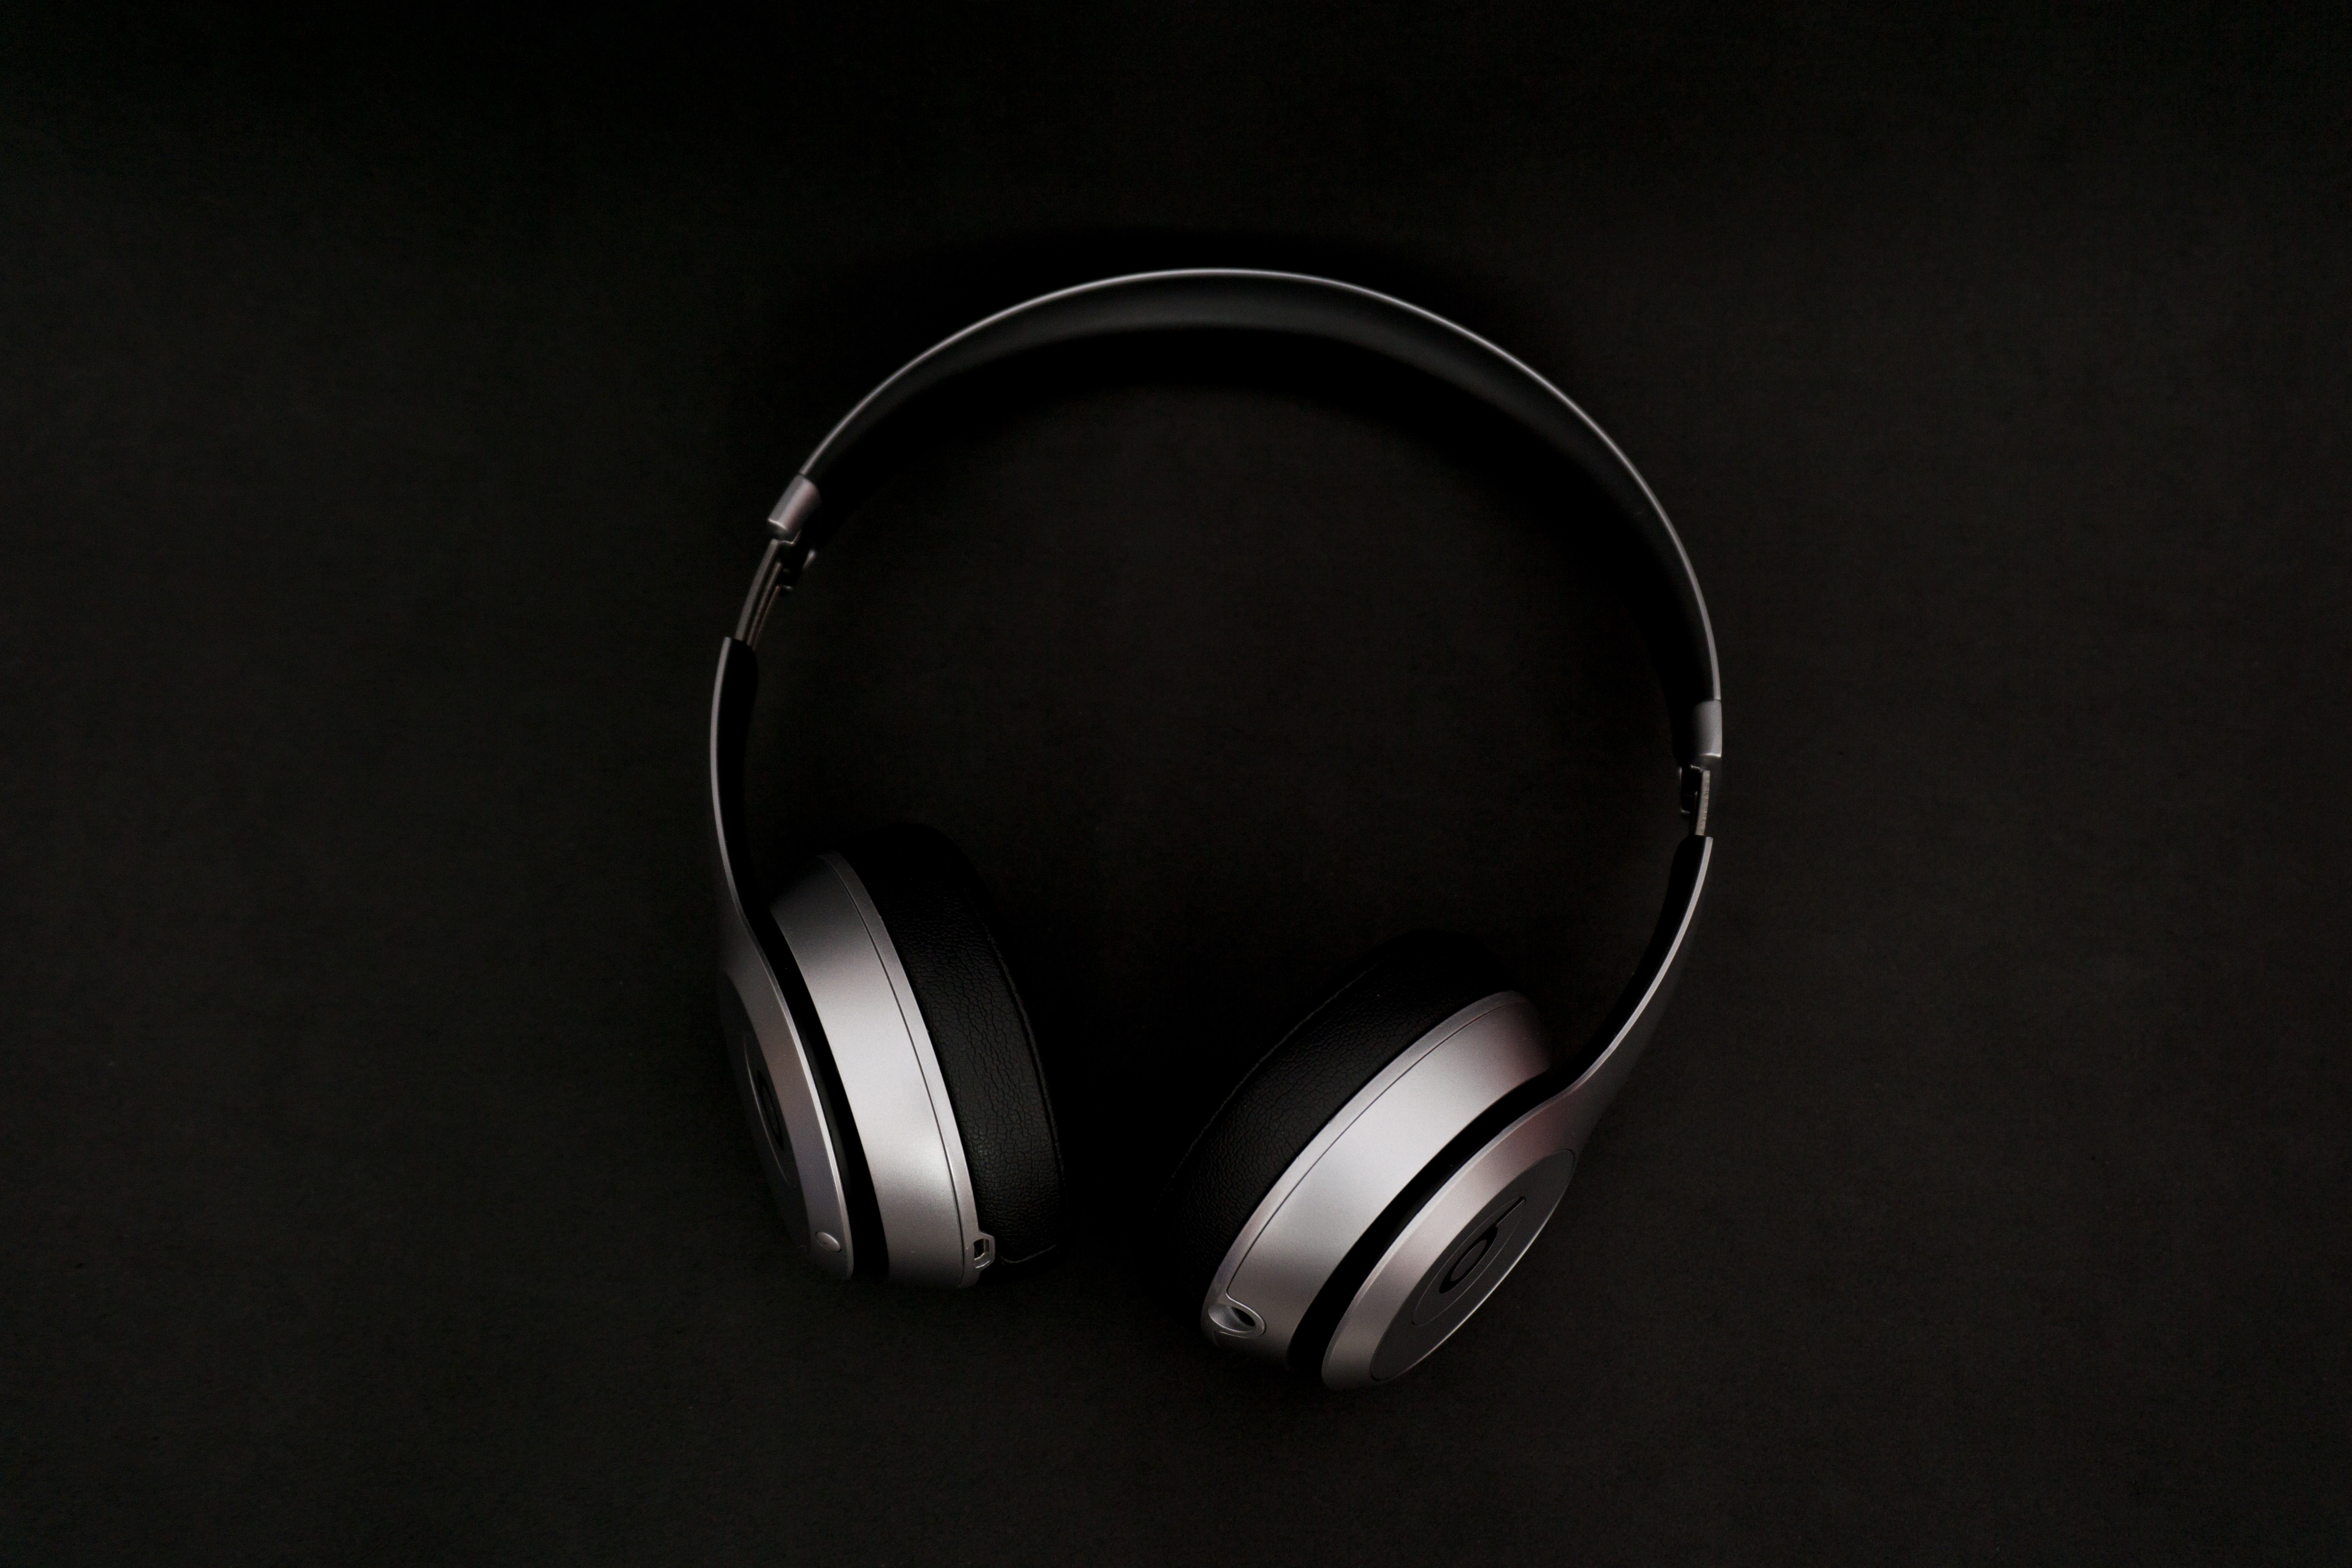 Silver and black earphones in black background standing upright